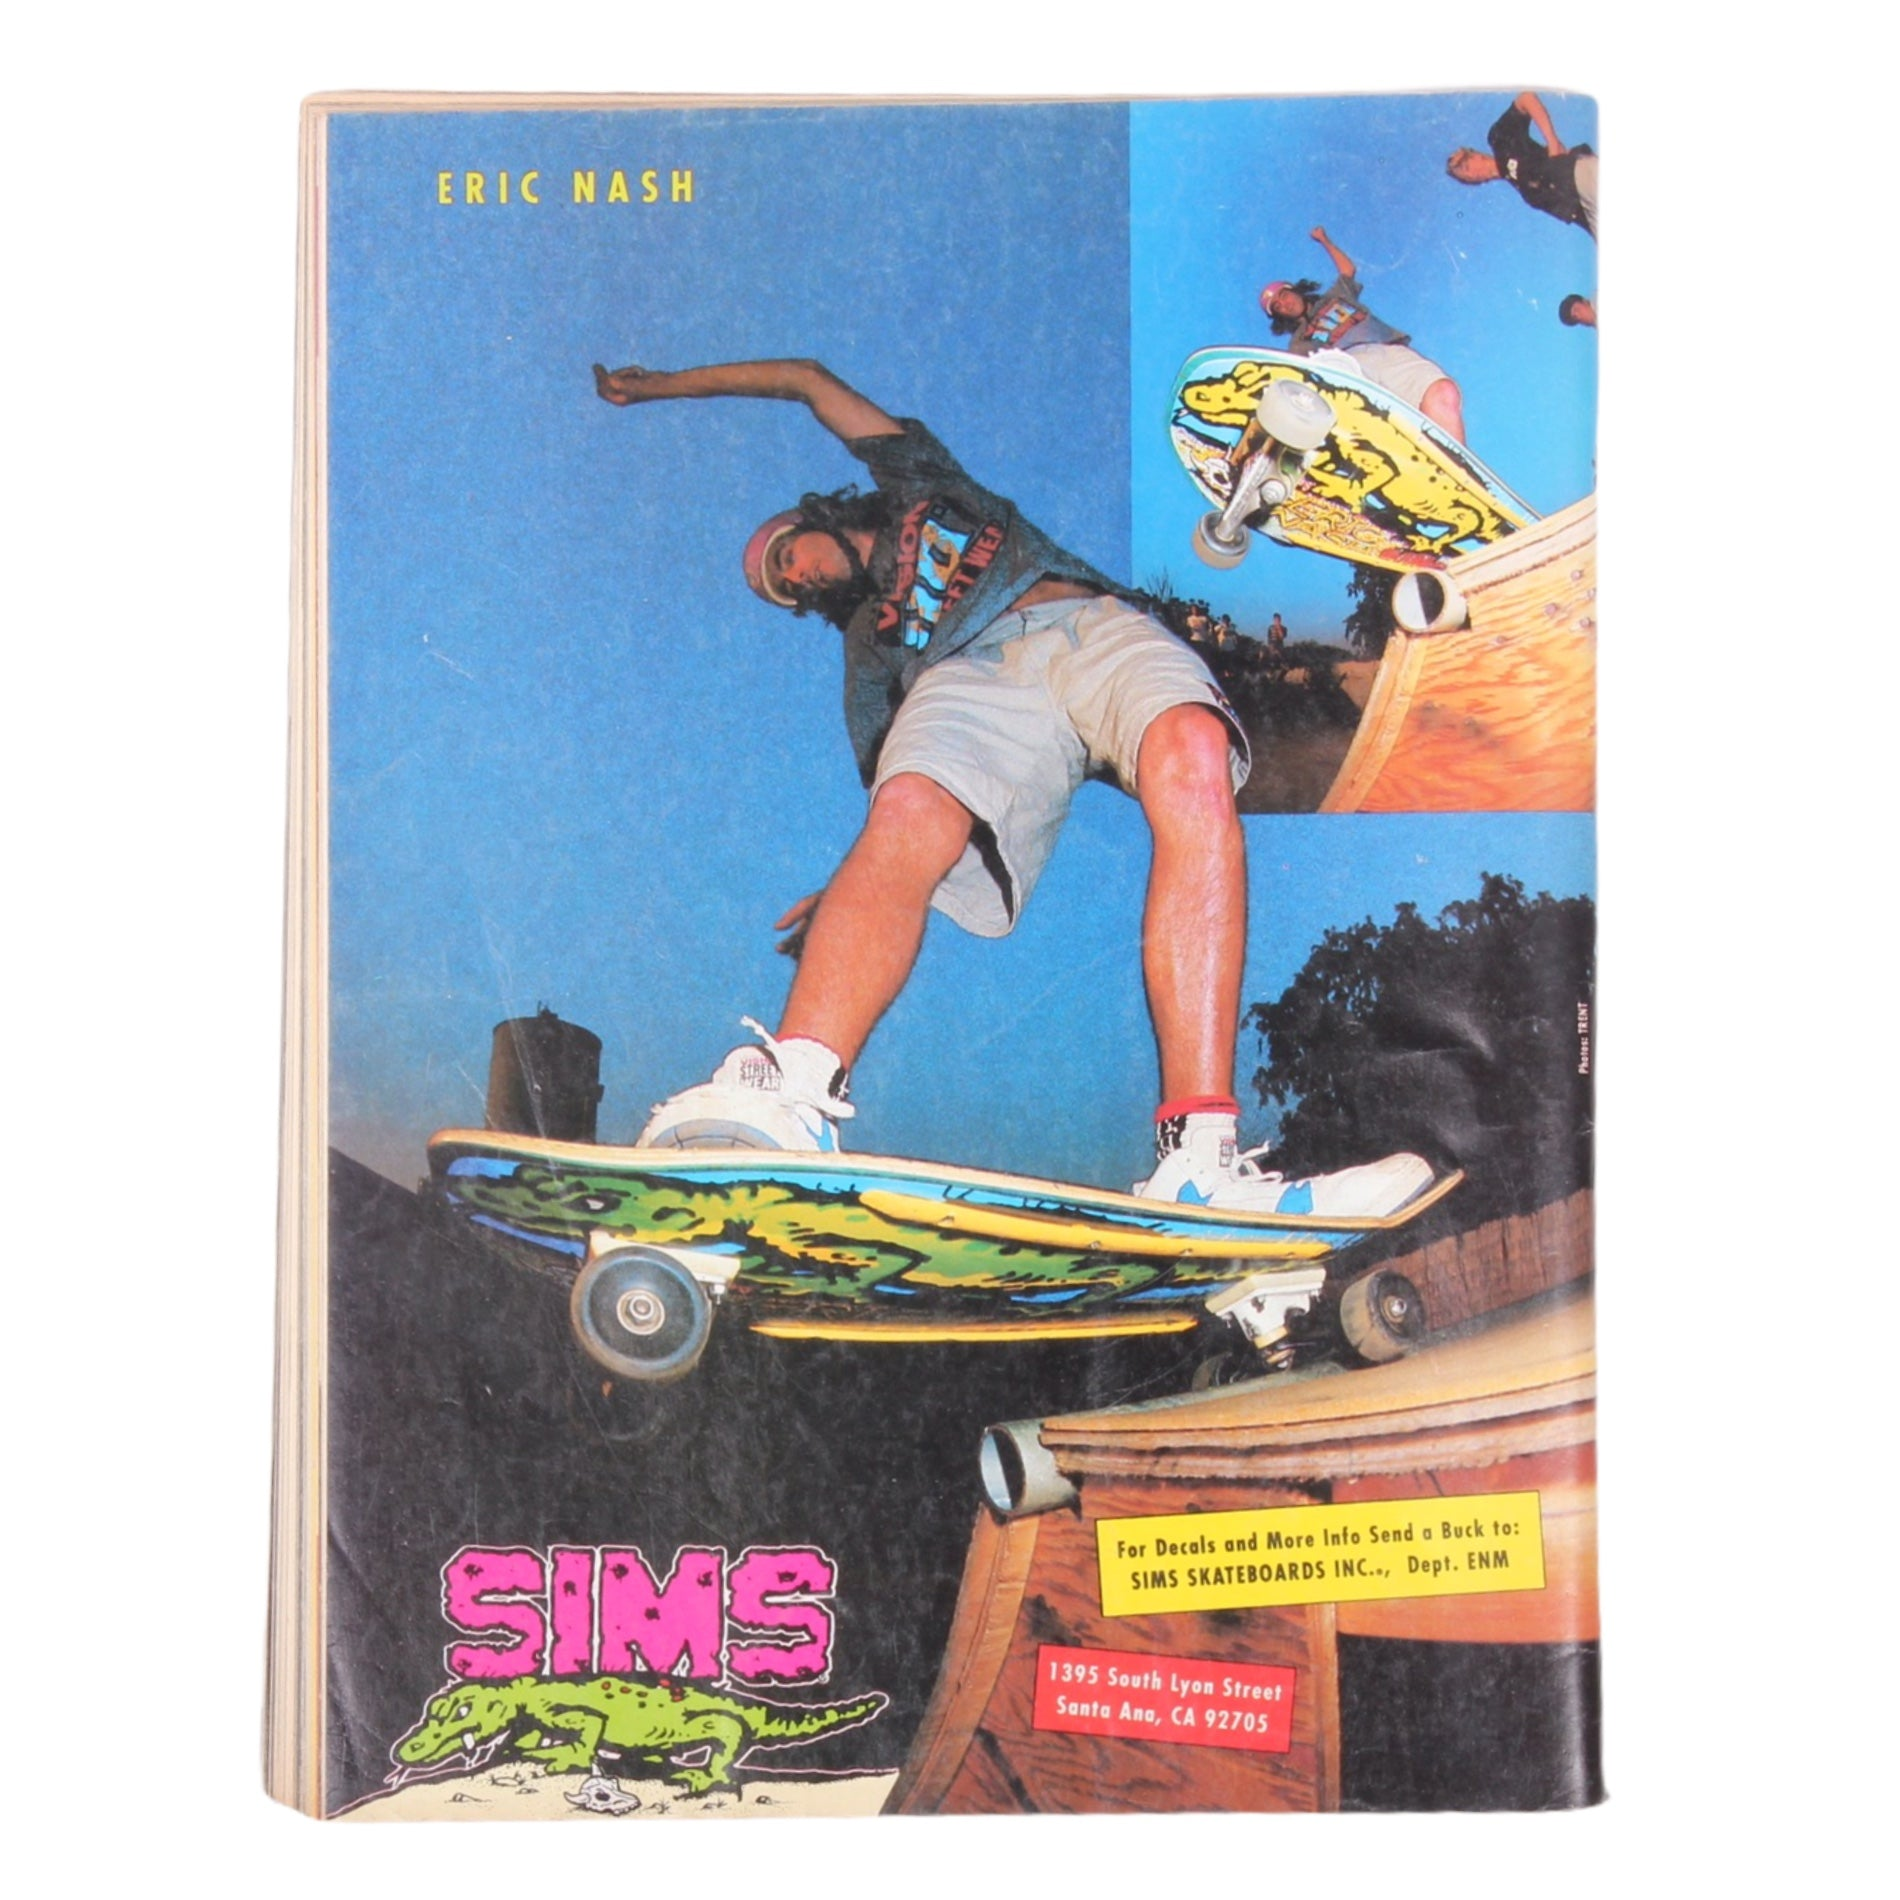 Overripe Thrasher Magazine August 1989